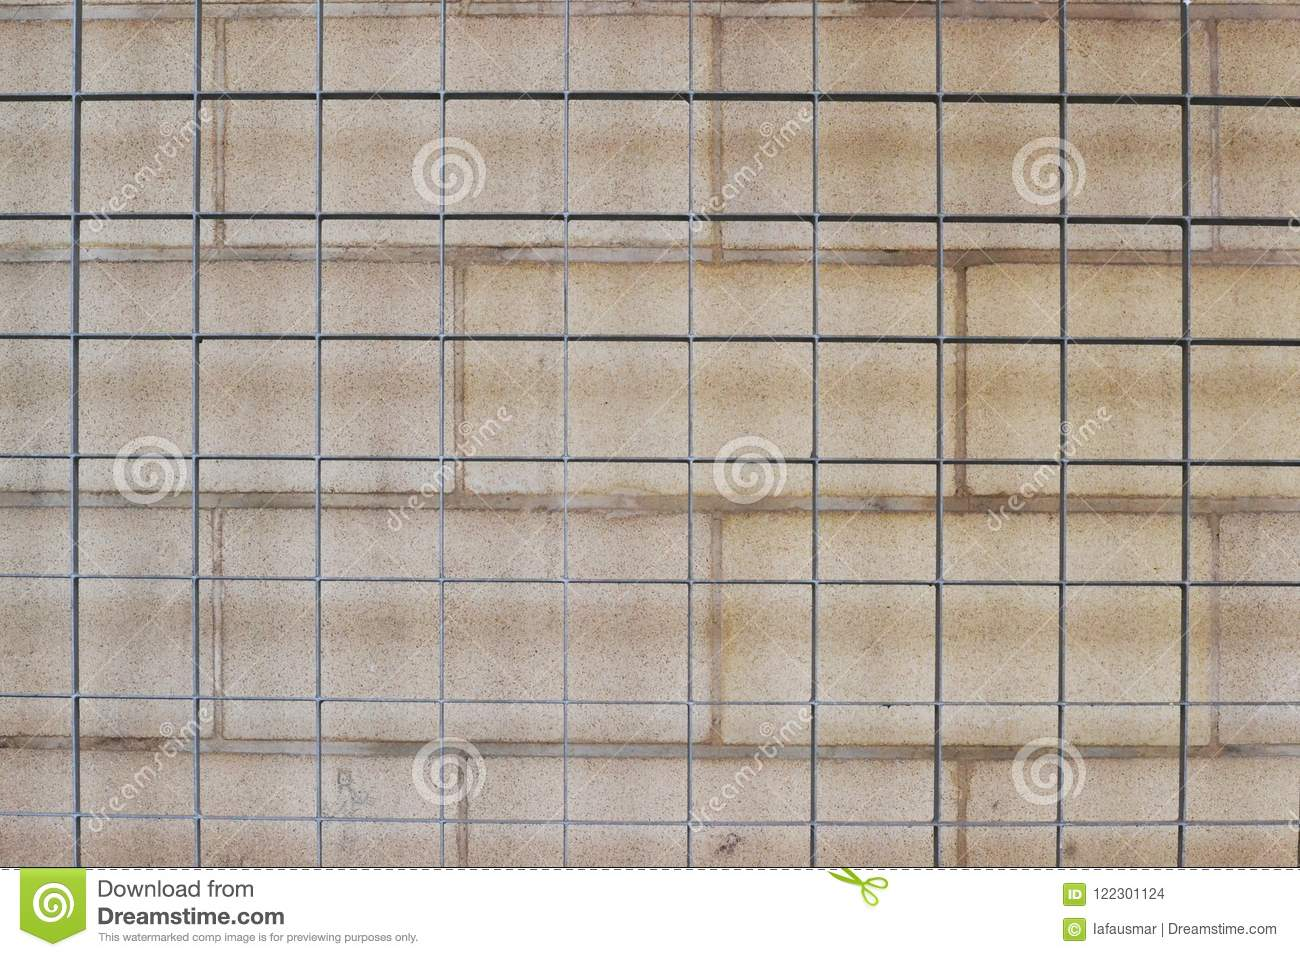 Wall Grid Wall Grid Texture Stock Photo Image Of Metallic Fence 122301124